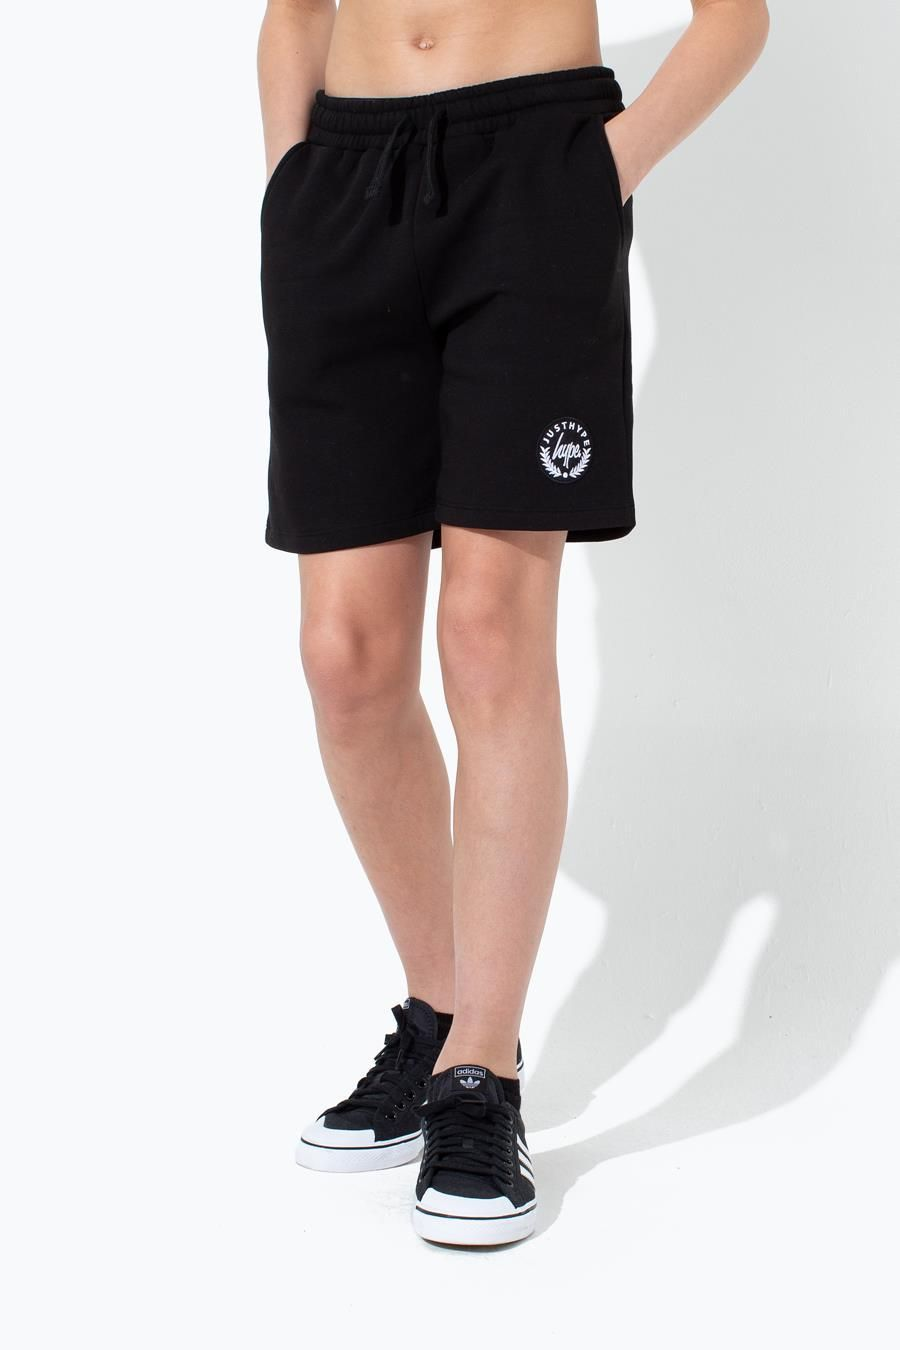 Hype Black Crest Kids Shorts